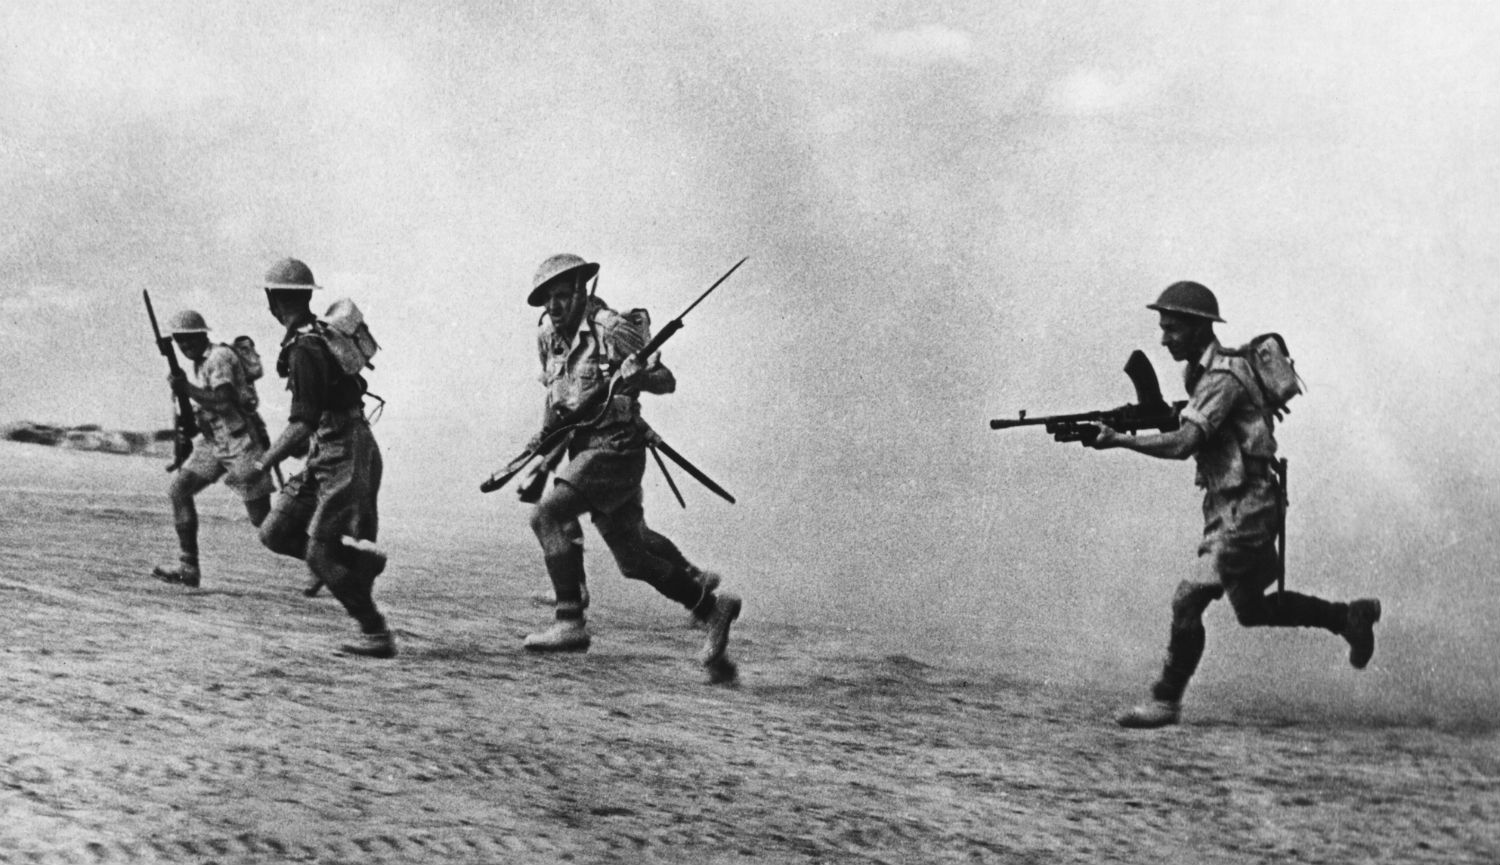 A British infantry patrol following retreating German forces at El Alamein, Egypt in November 1942. Mondadori Portfolio via Getty Images.